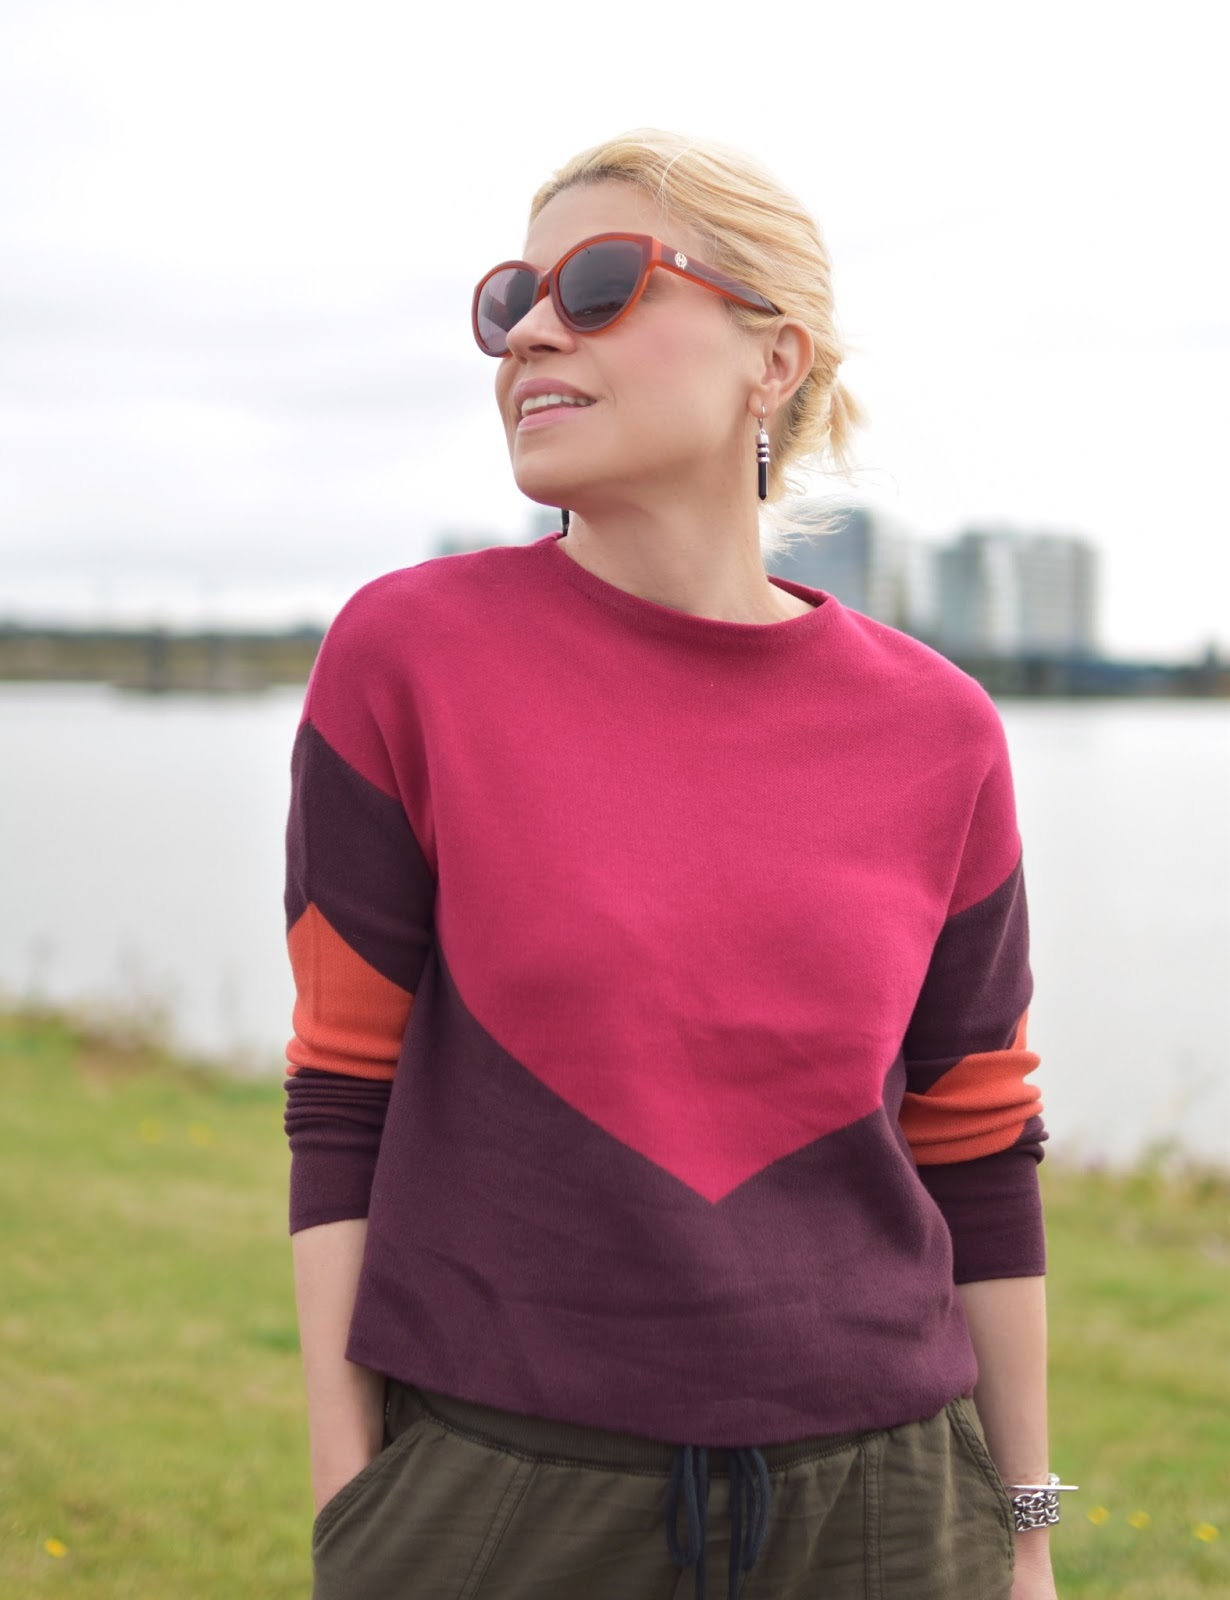 Gen X outfit inspiration c/o Monika Faulkner - colour-blocked sweater, House of Harlow 1960 sunglasses